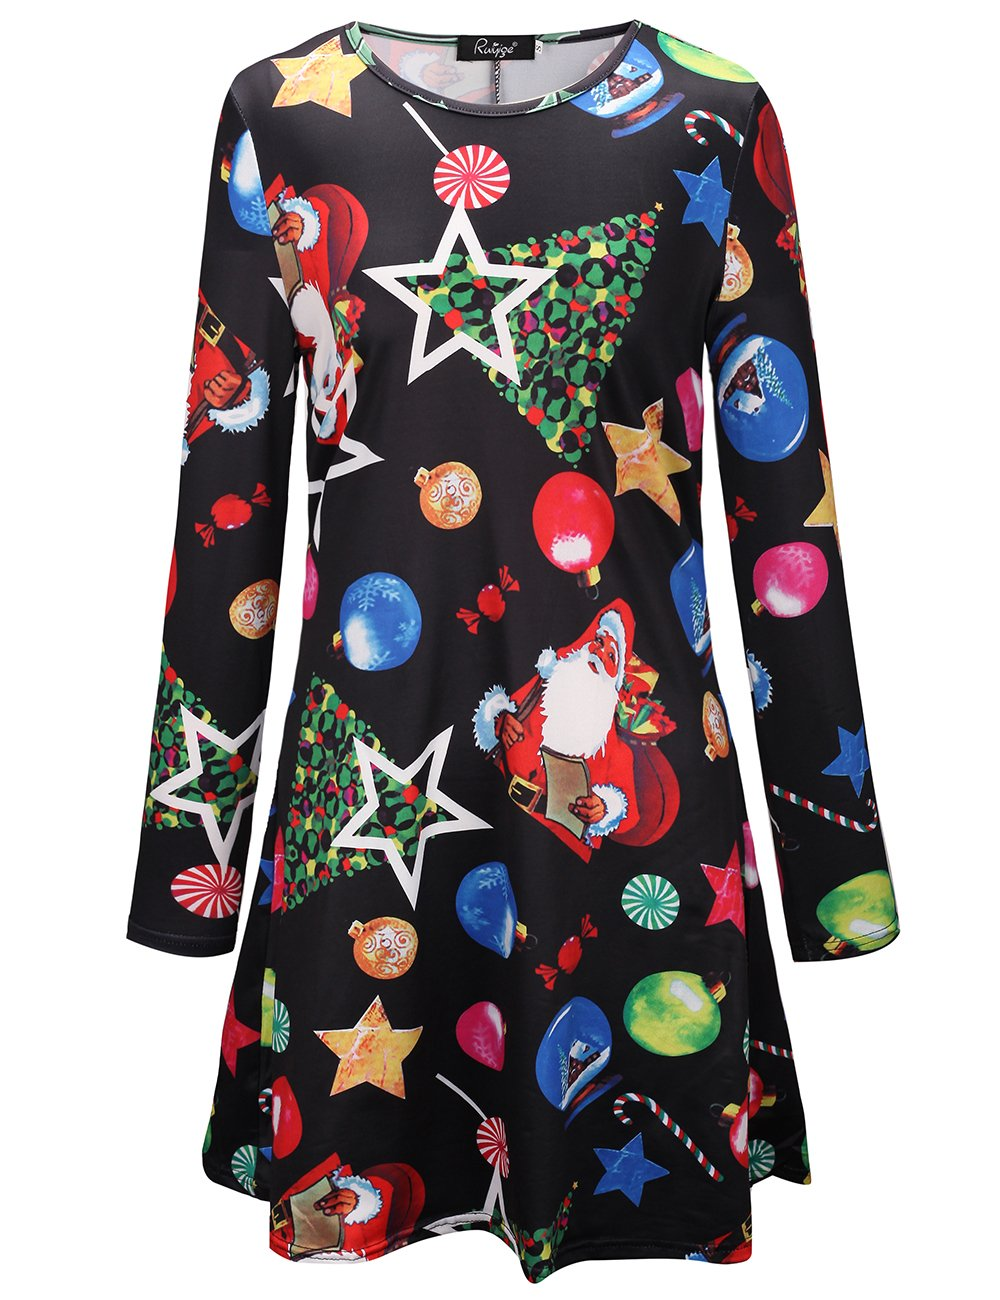 Womens Christmas Swing Dress Long Sleeve Santa Snowflake Colourful Special Gift G195-K195